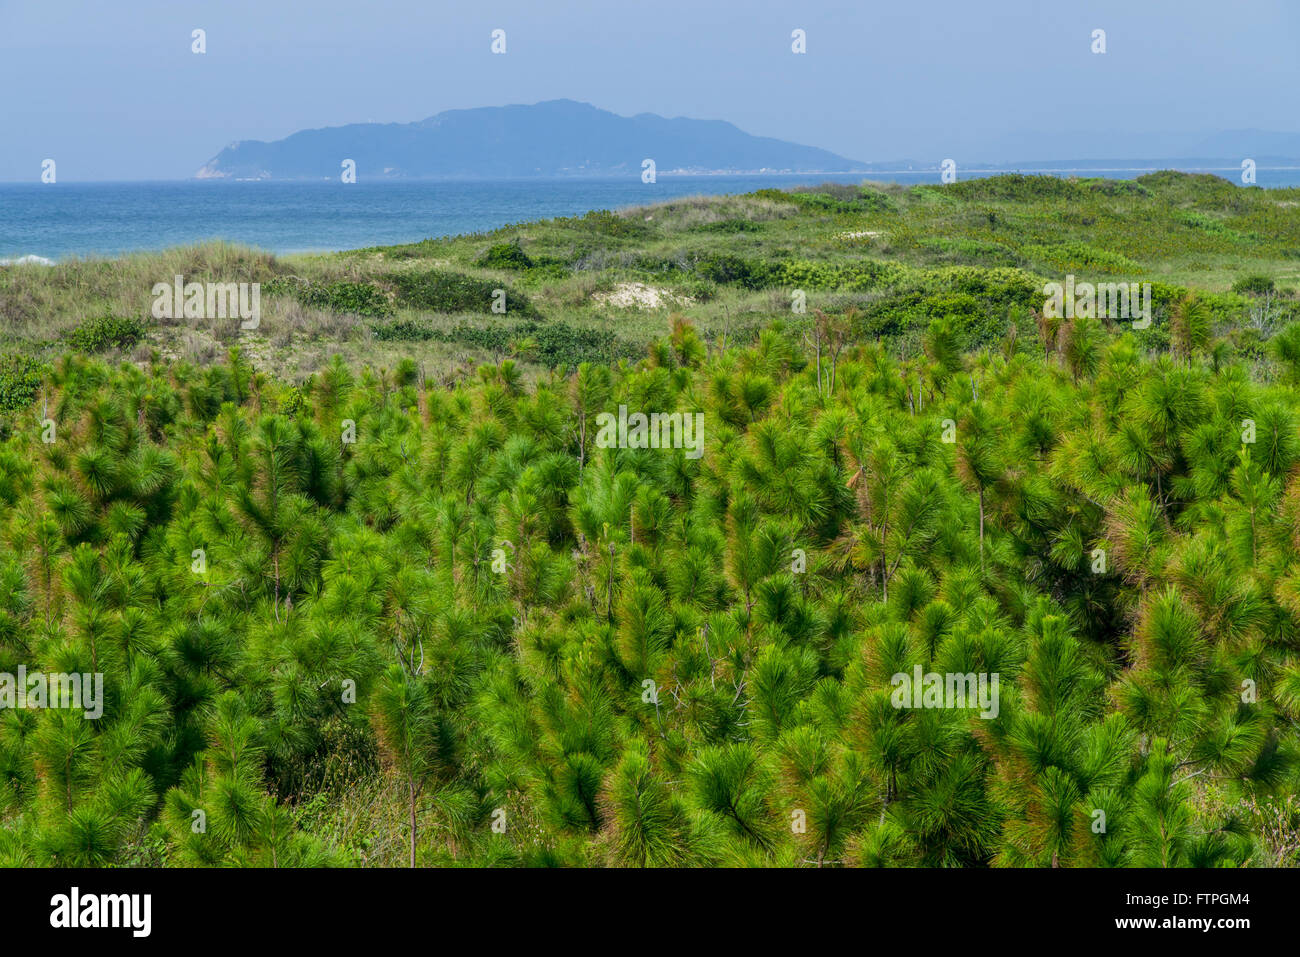 Mozambique Beach in the Red River State Park with pine plantation - Stock Image